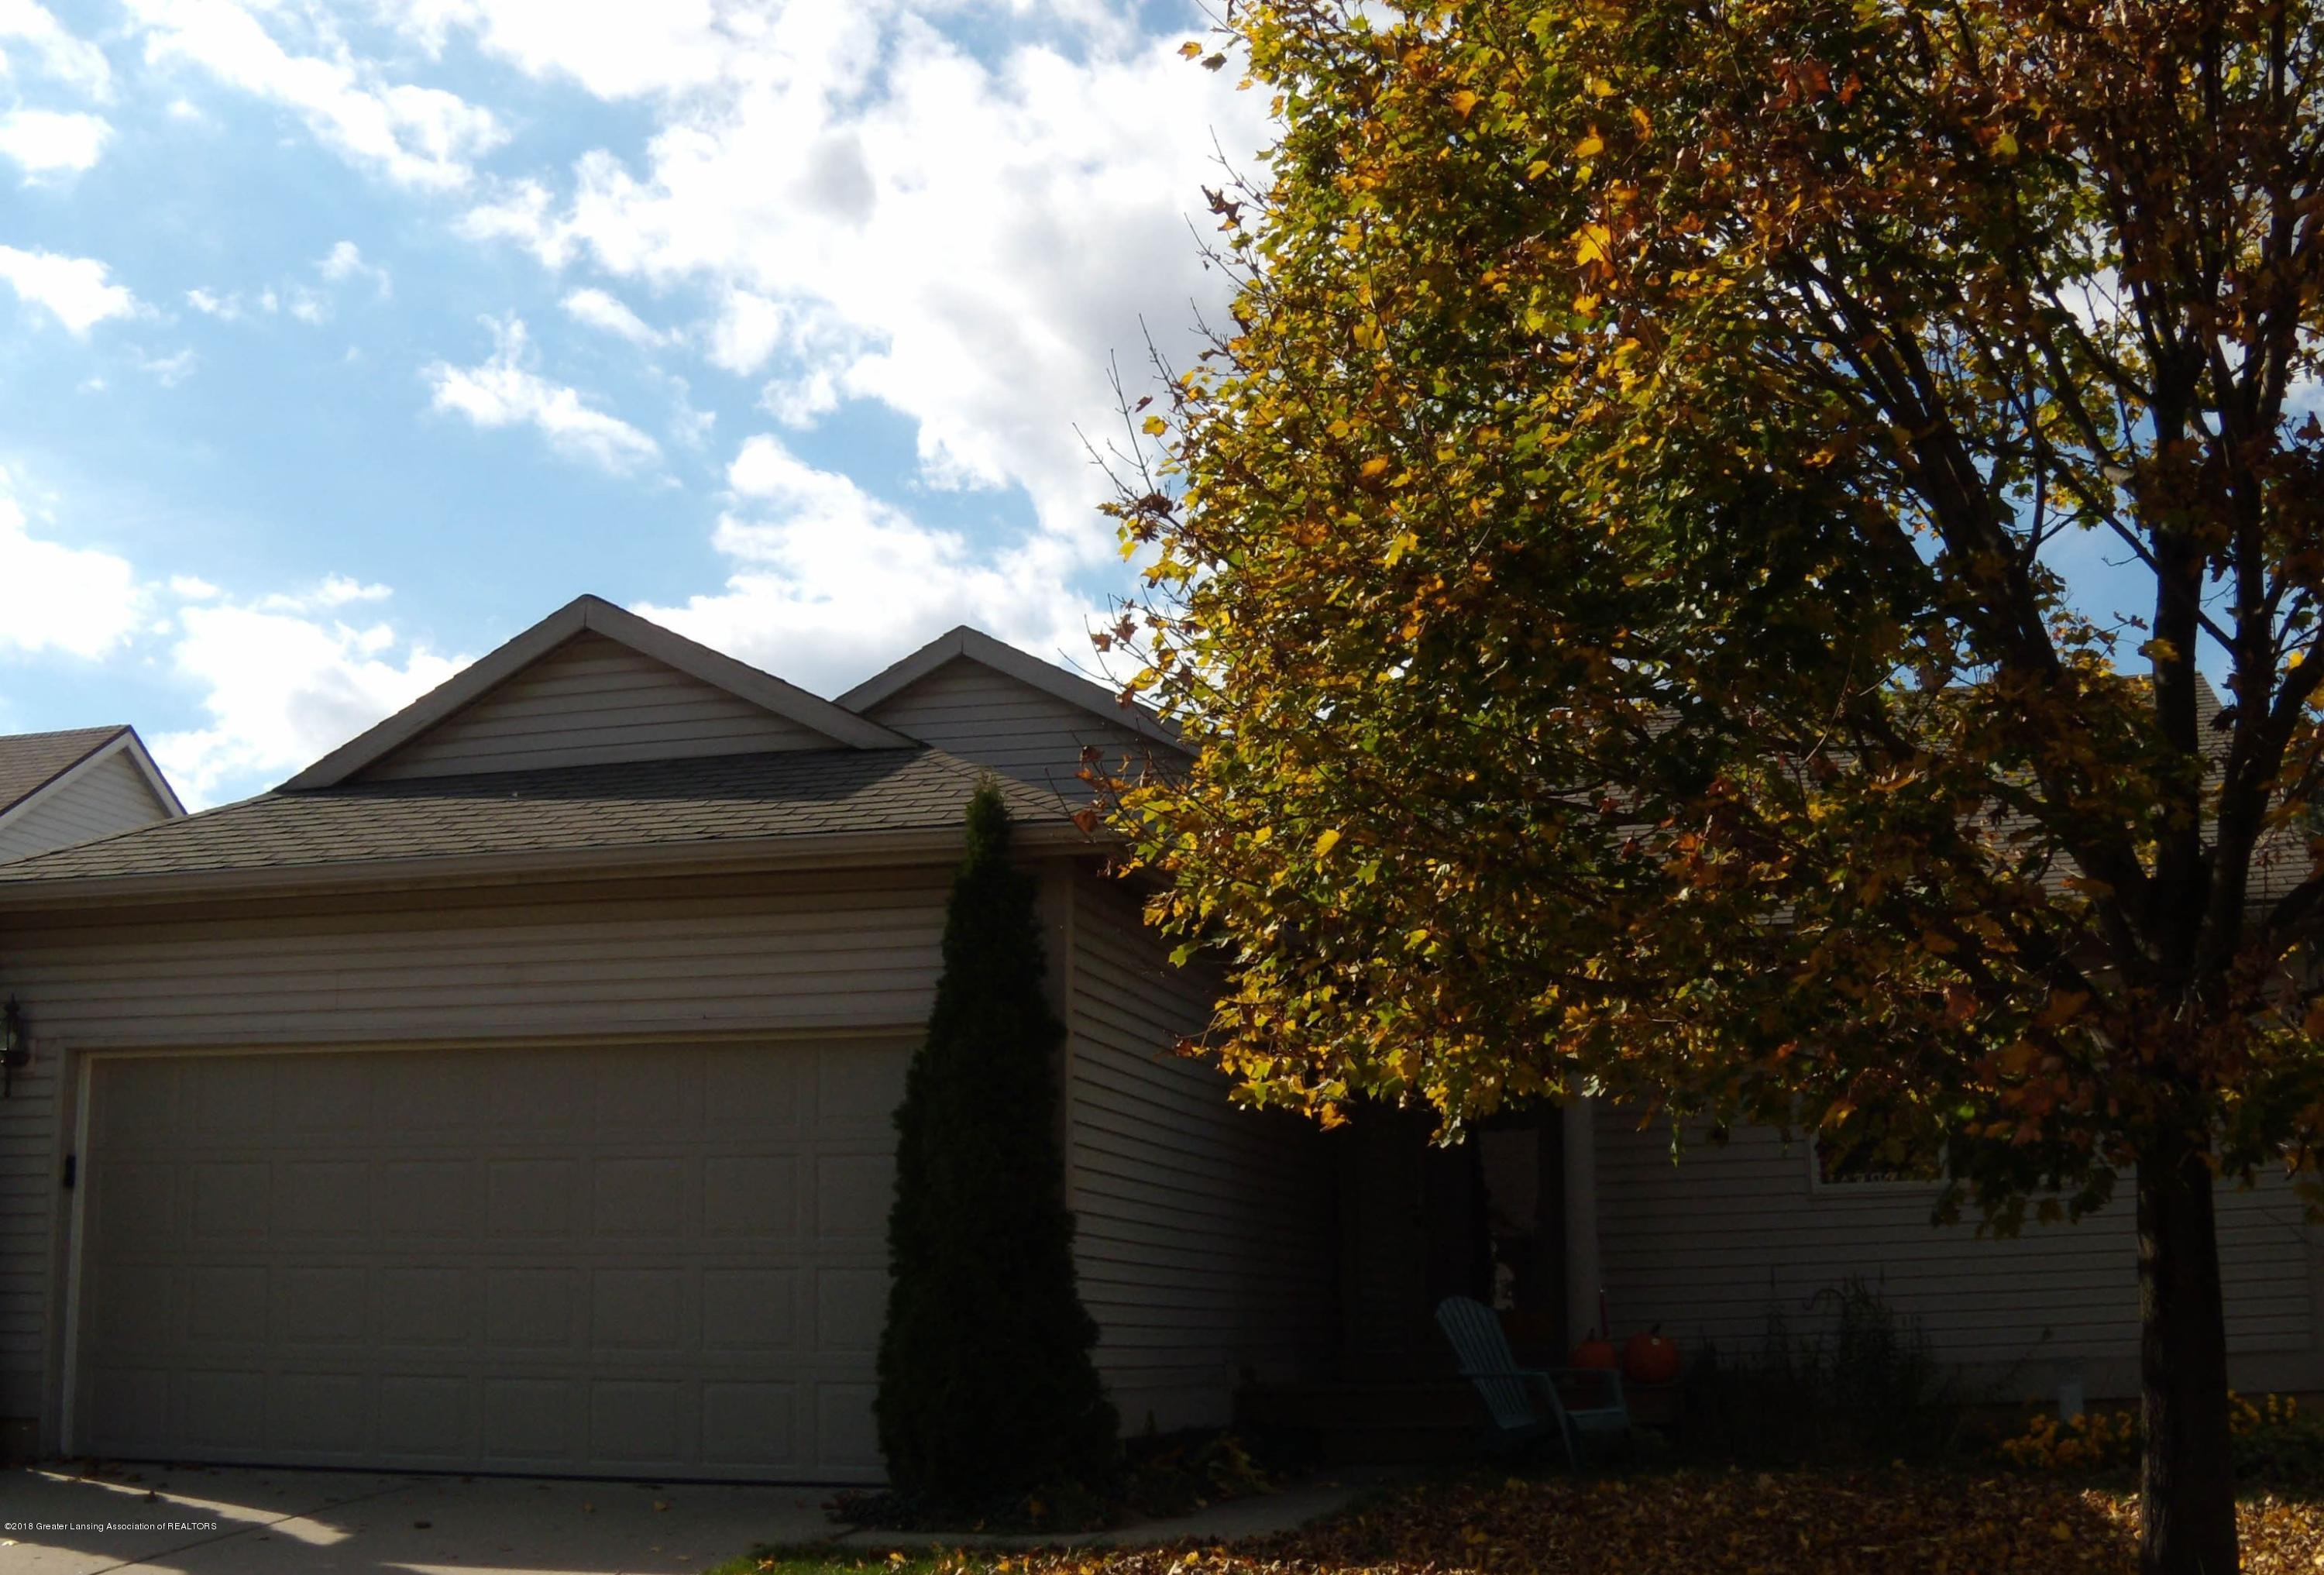 281 Winding River Dr - FRONT EXTERIOR - 1